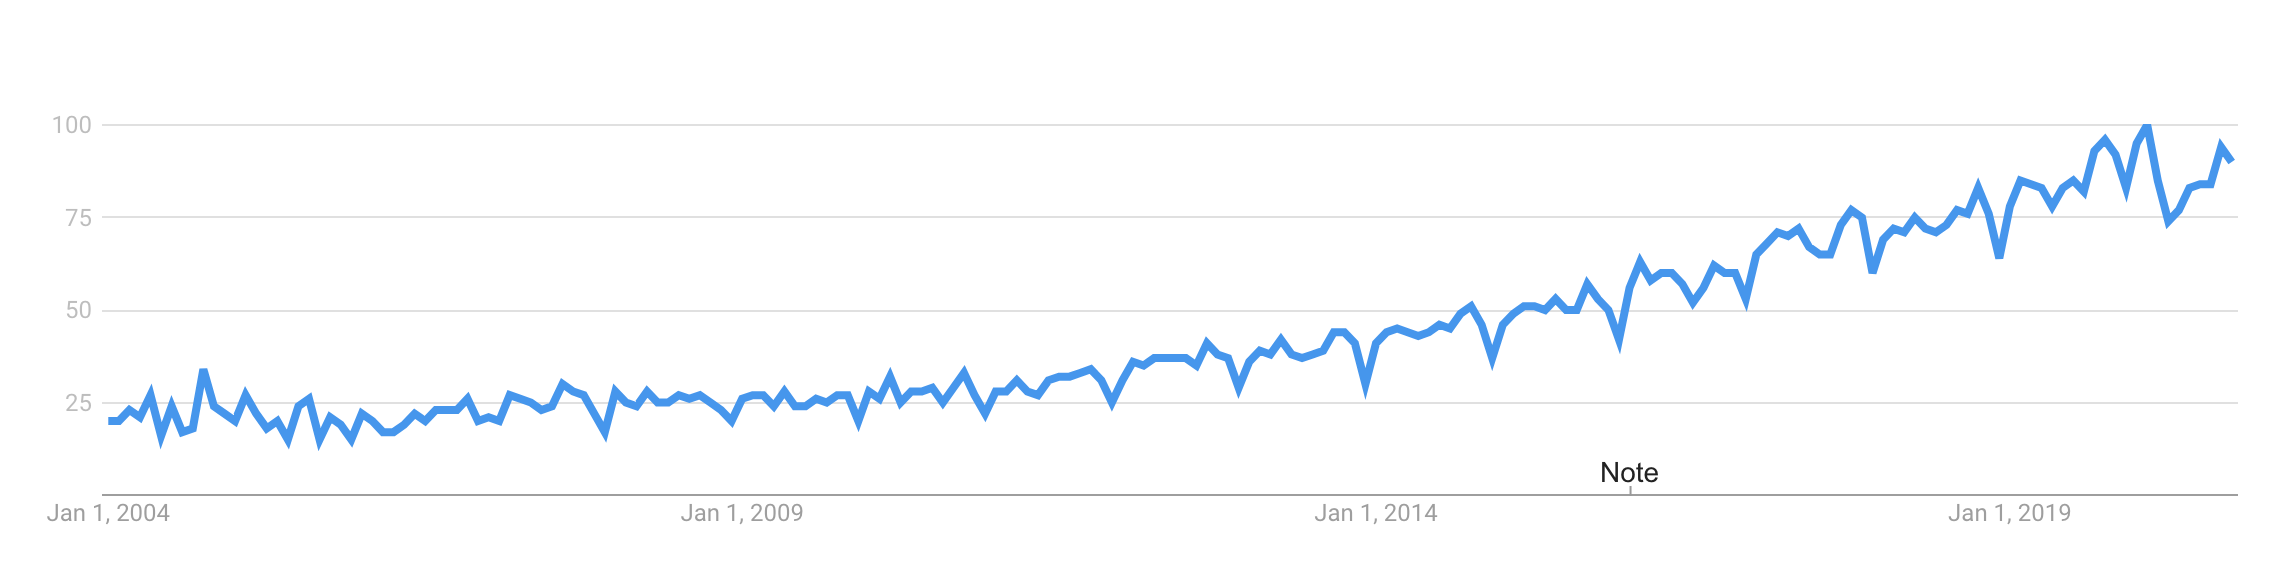 Google Trends Customer Experience